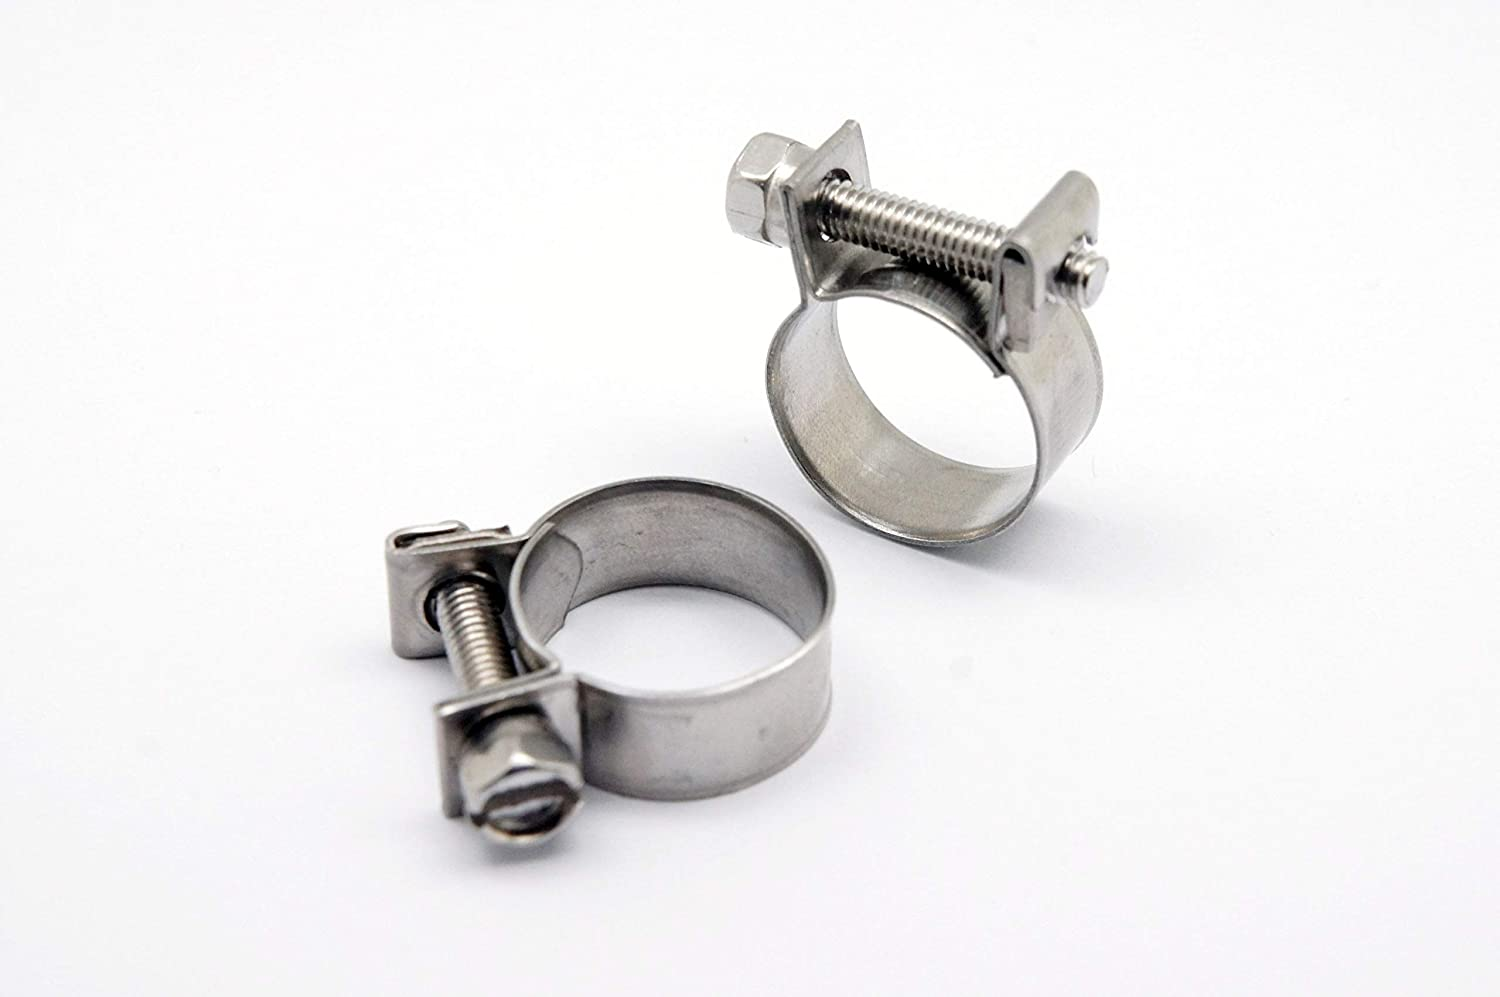 OD 0.75 19mm 76mm Chrome Polish Includes 2 G-Clamps L 3 Autobahn88 Aluminum Alloy Hose Joiner Pipe